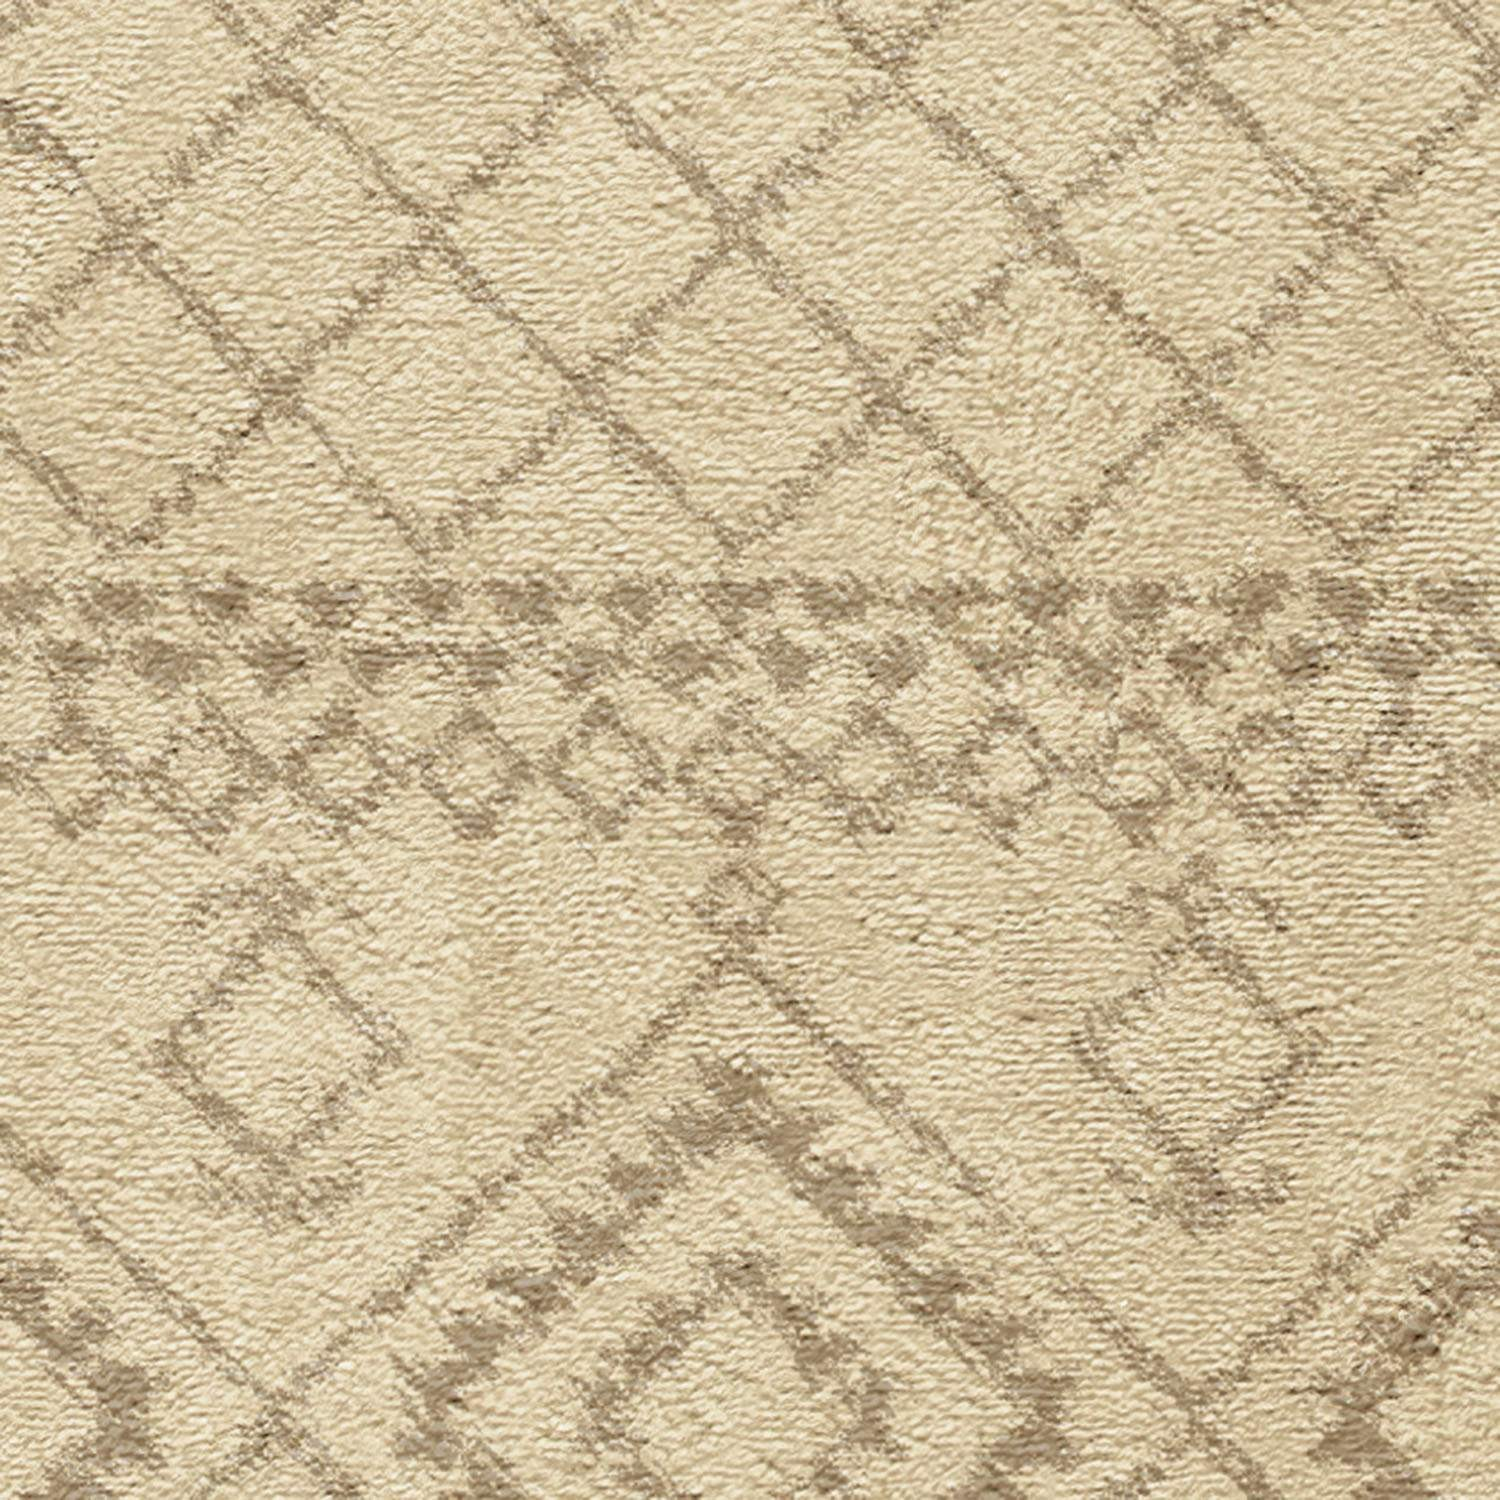 Orian Rugs Utopia 2403 Benie Beige Rug for floor decor ideas